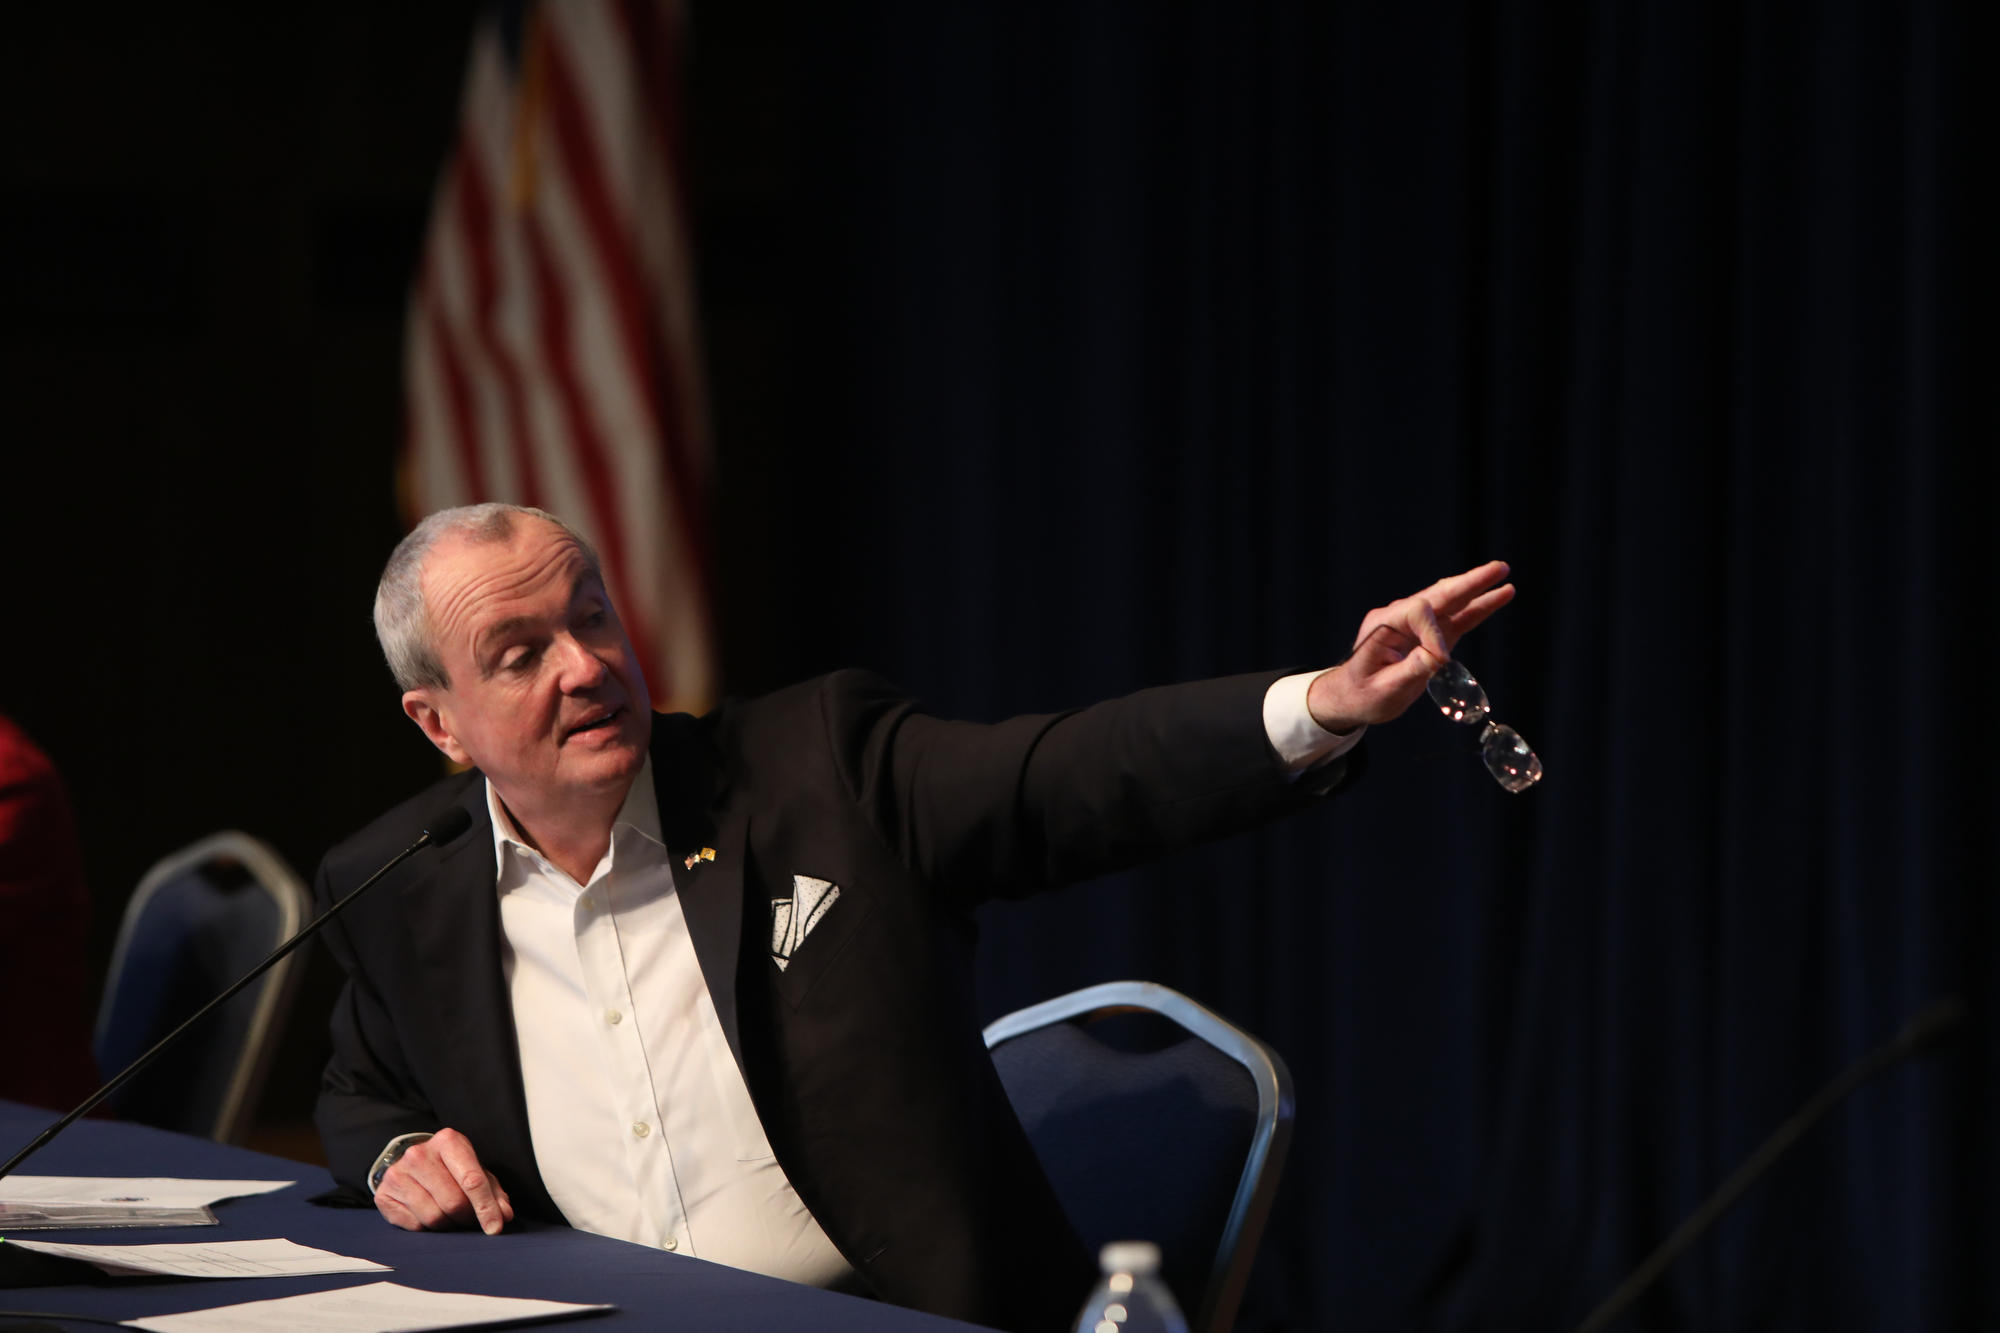 Gov. Murphy: No COVID-19 outbreak stemming from Trump fundraiser